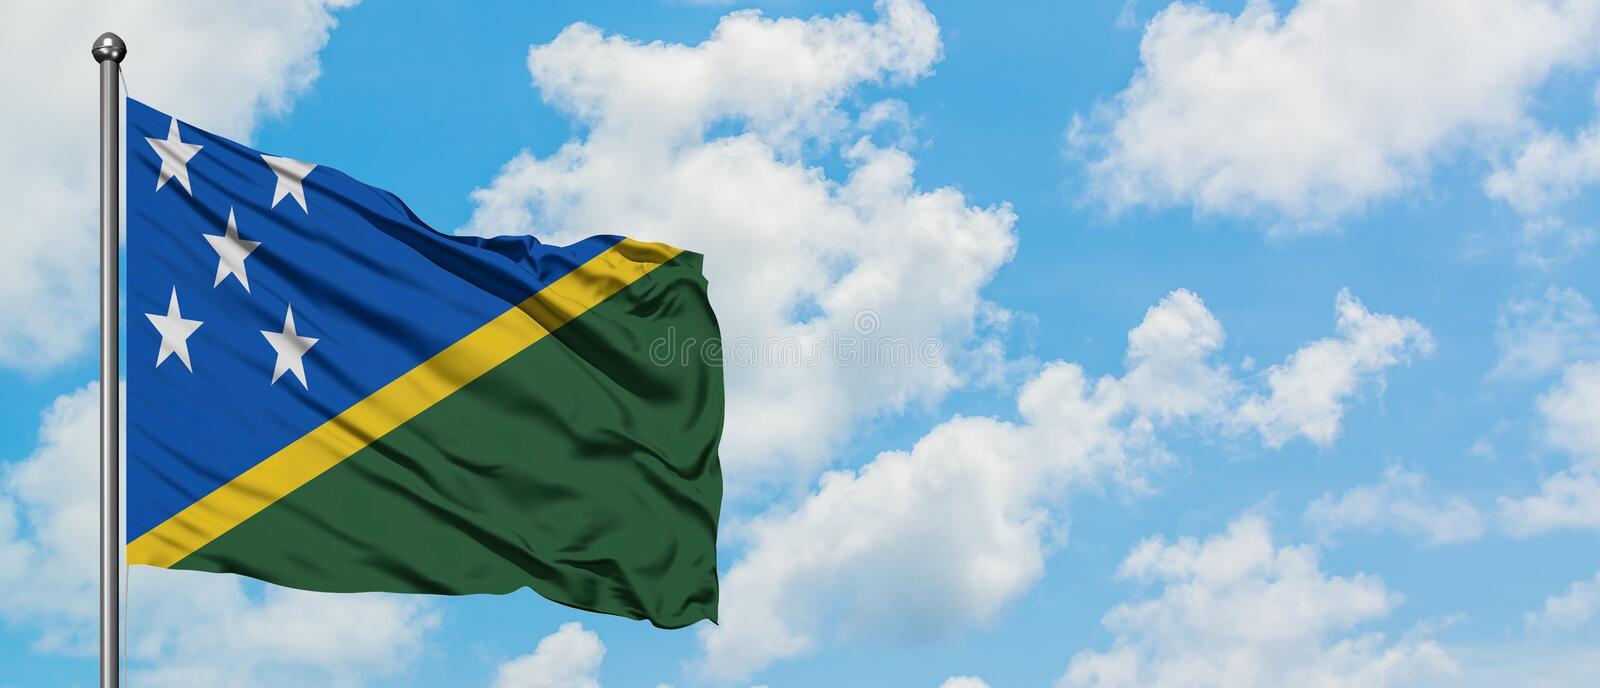 Solomon Islands flag waving in the wind against white cloudy blue sky. Diplomacy concept, international relations.  stock photo